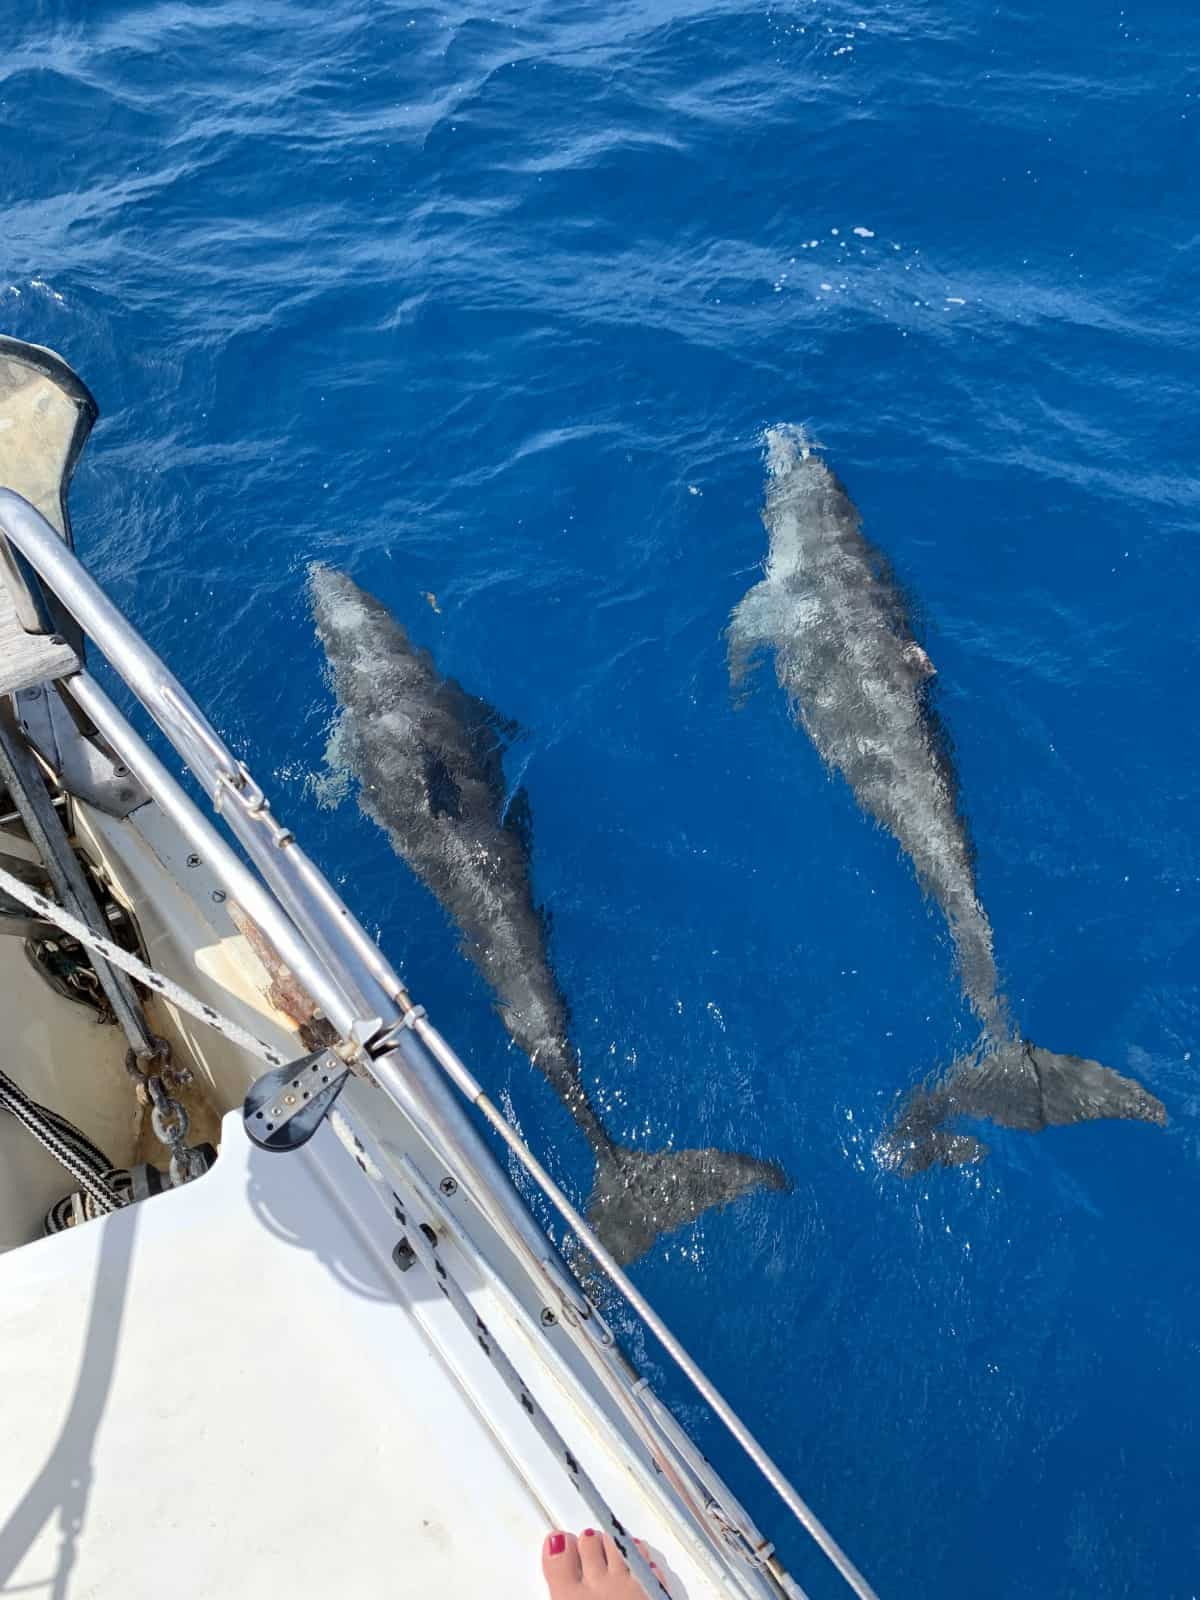 Schools of dolphins just came and swam with the boat for a while! What to expect on a multi-day sailing trip Key West to Dry Tortugas